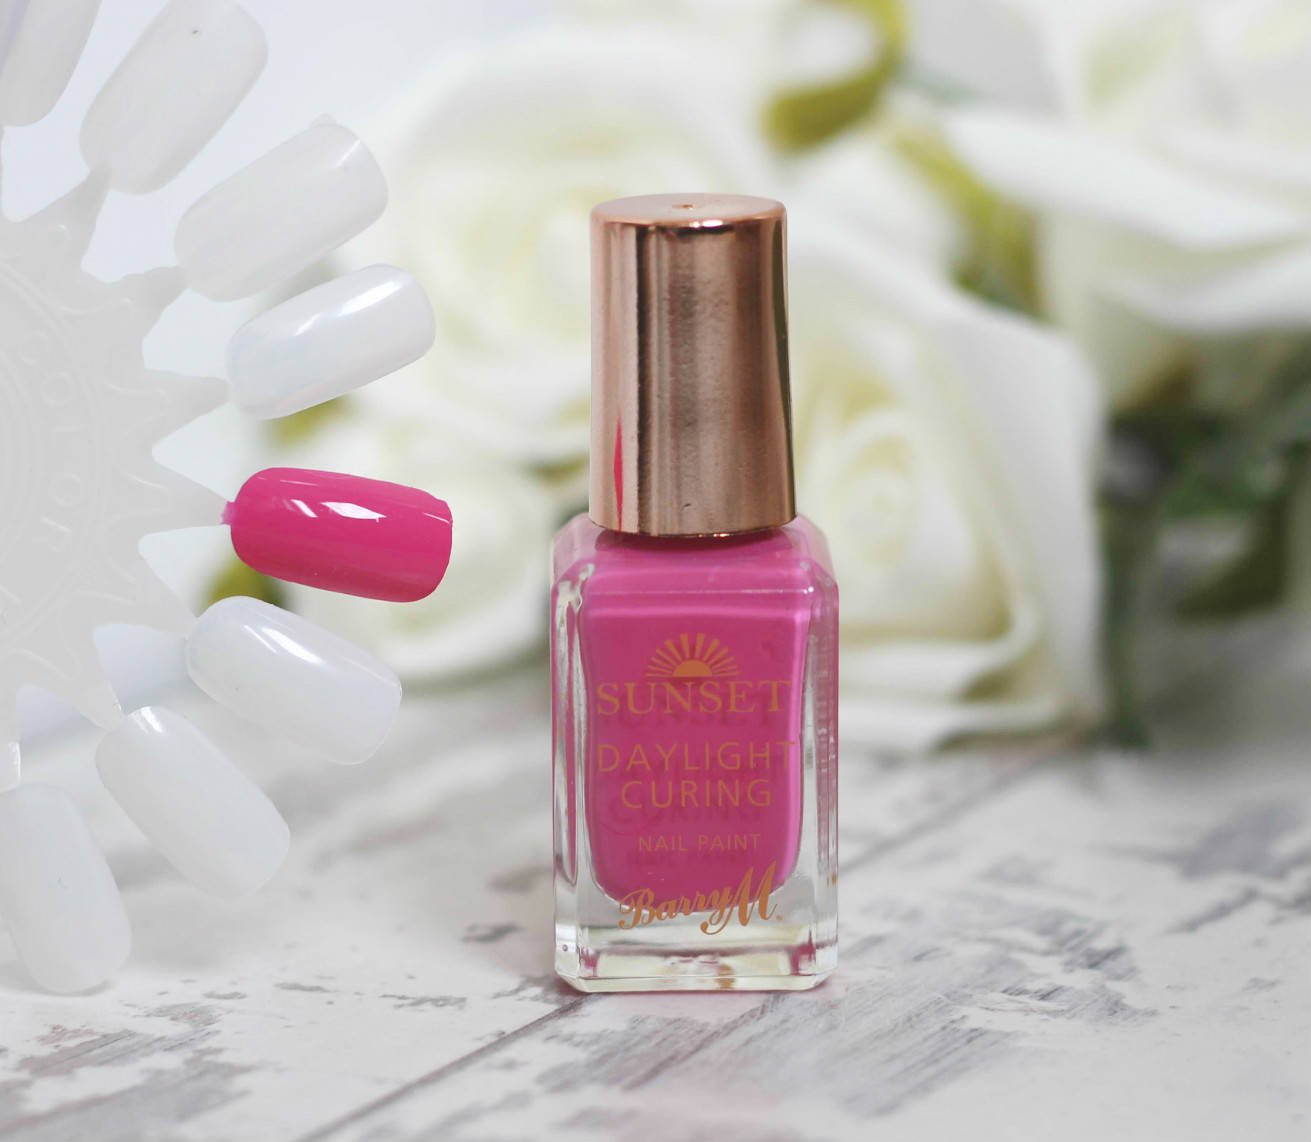 Barry M Sunset Daylight Curing Nail Polishes Review